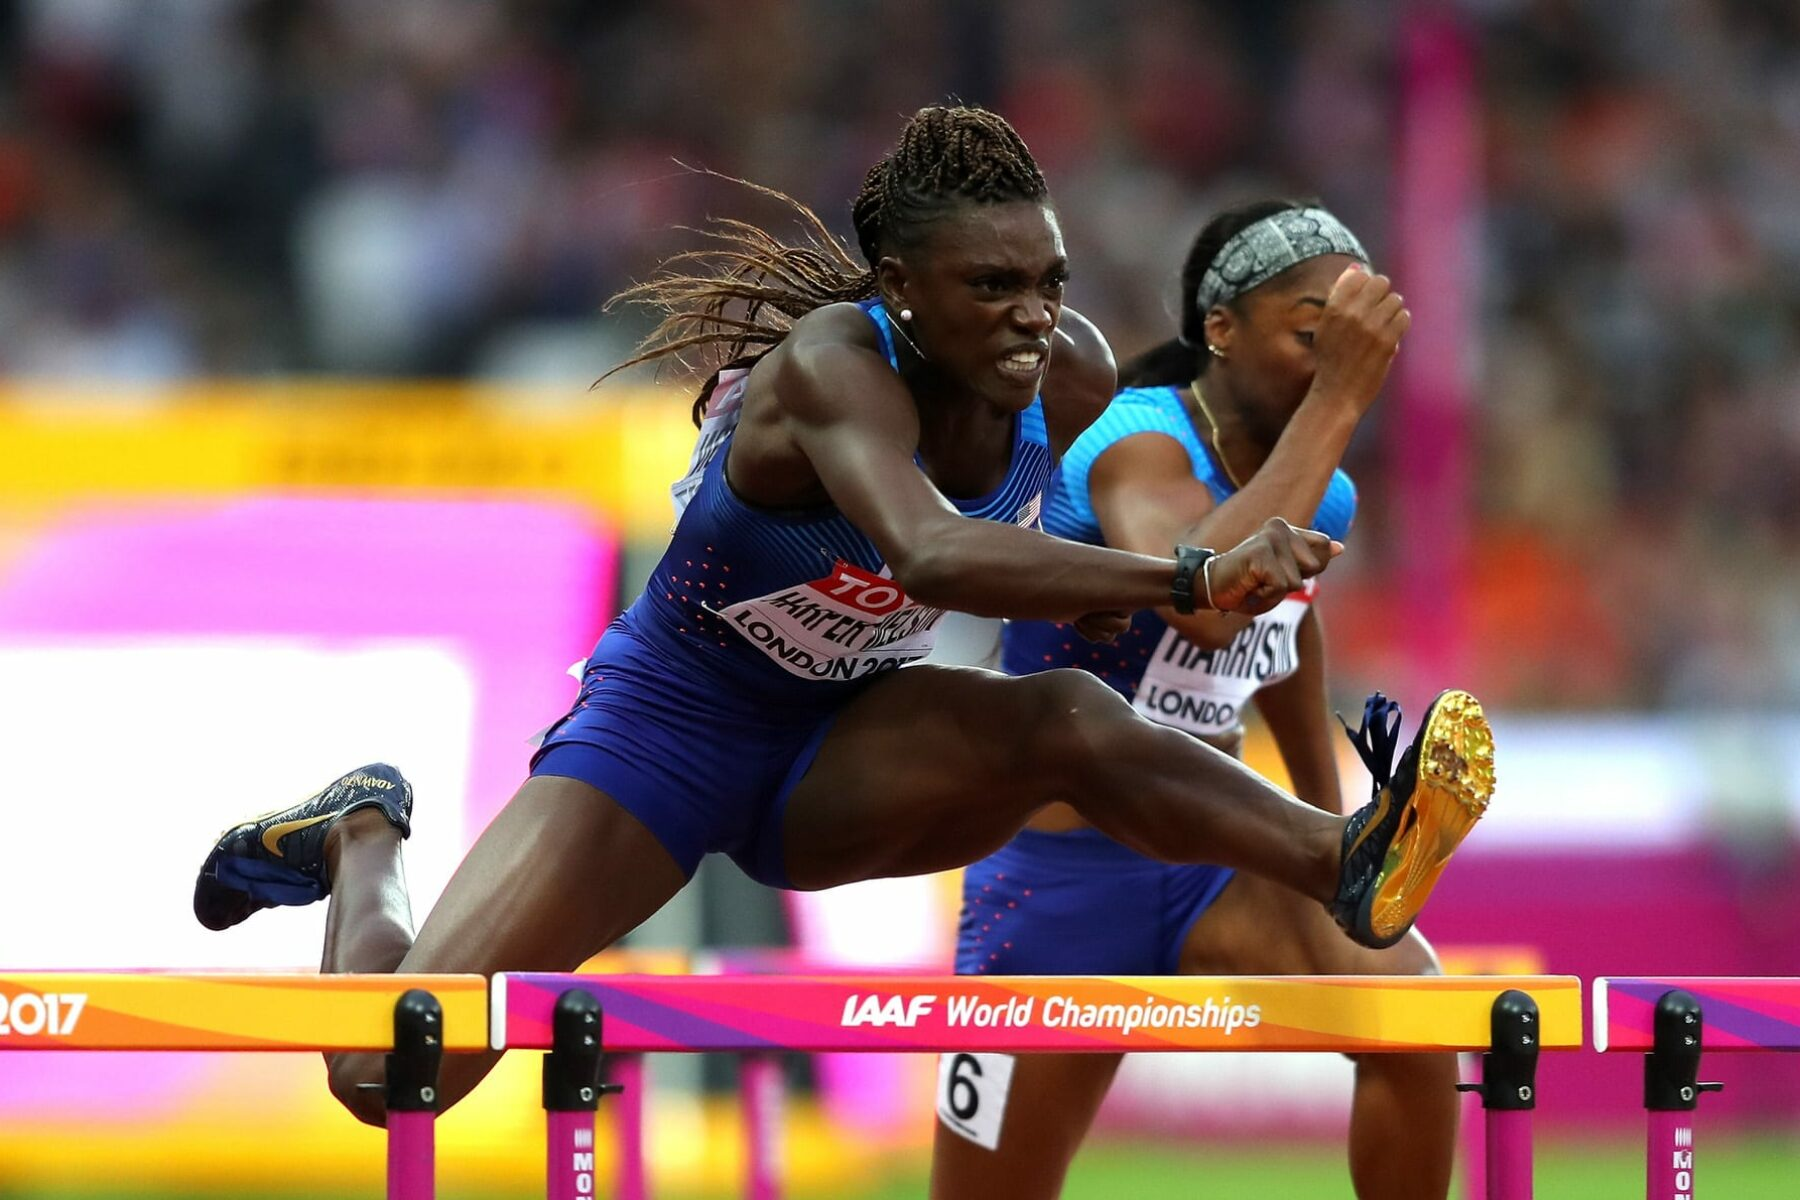 Dawn Harper-Nelson jumping over a hurdle.